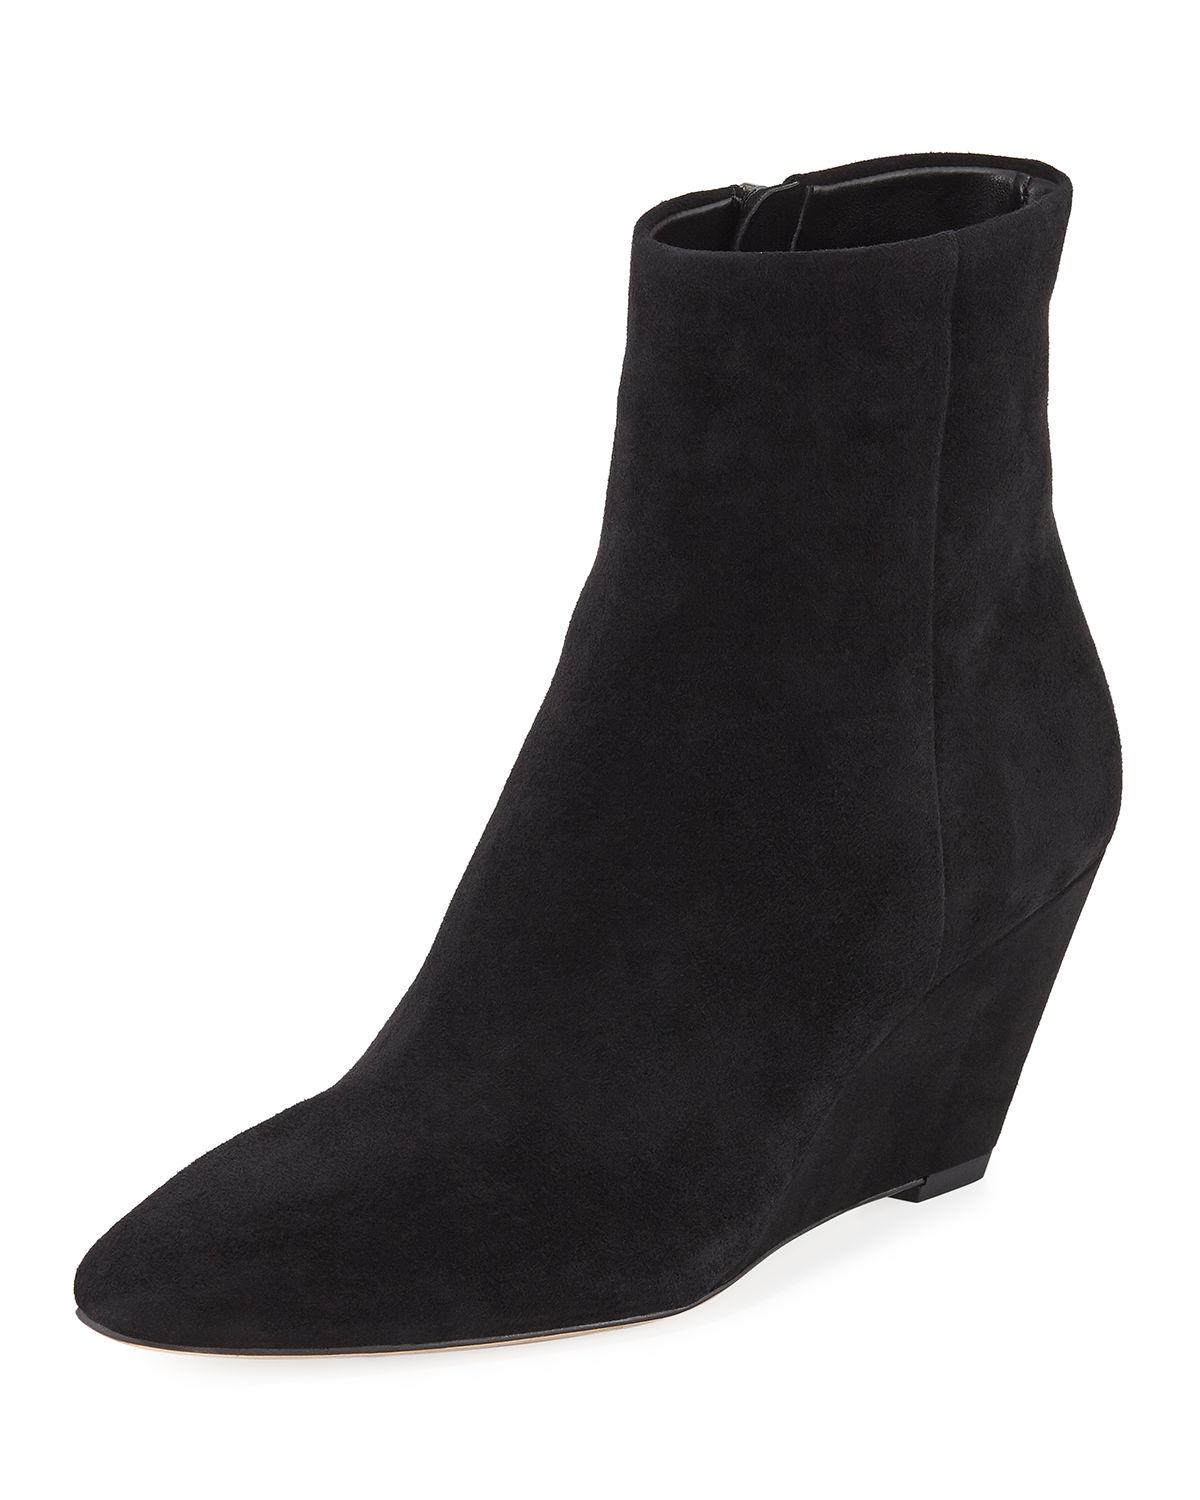 23aad6b1472 Donald J Pliner Women s Jae Suede Wedge Booties In Black